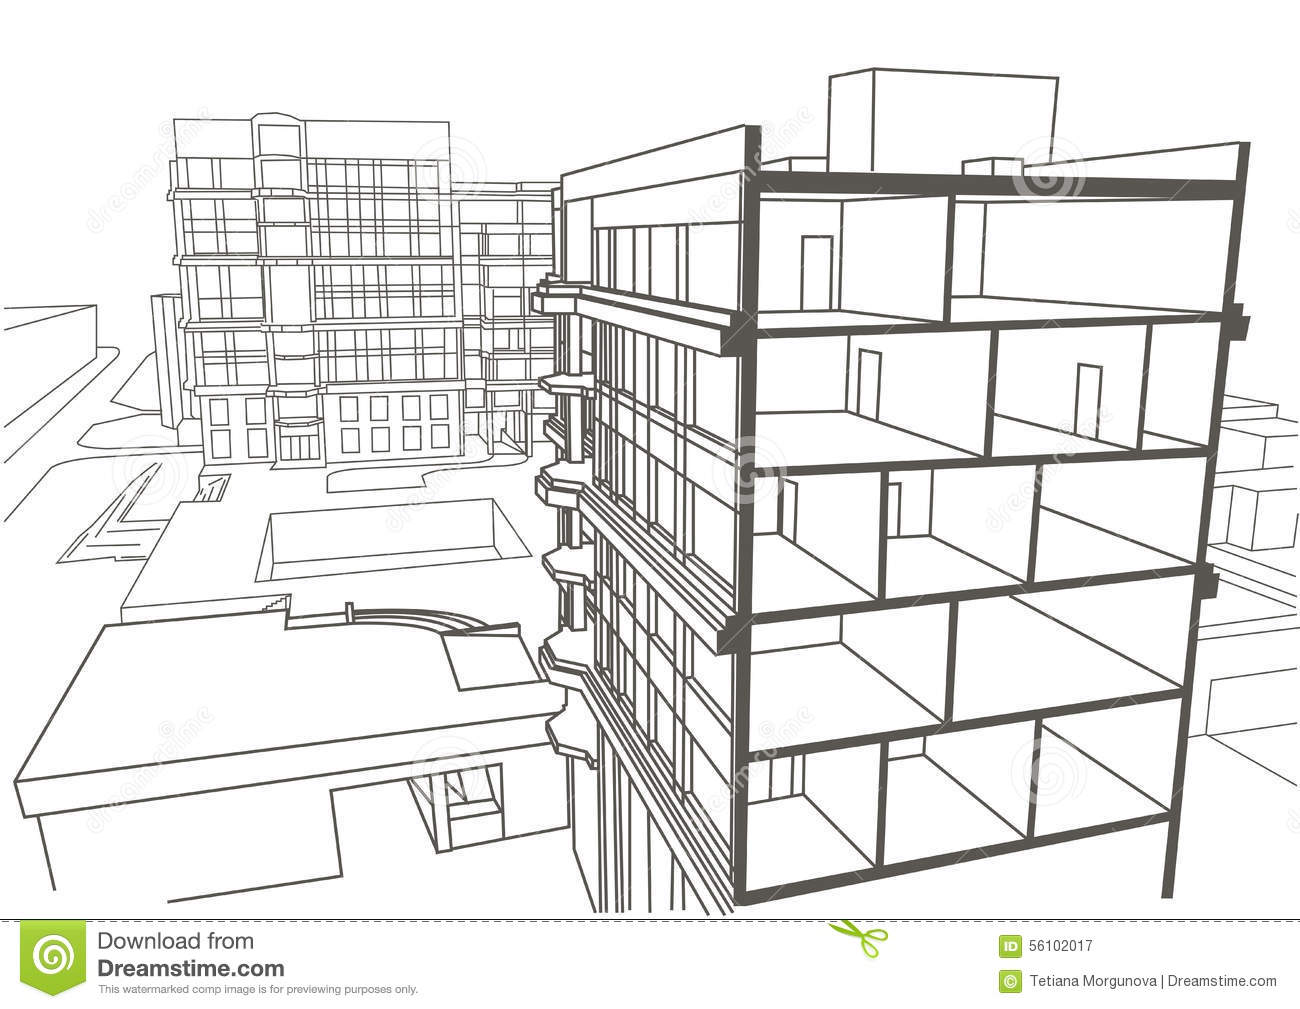 Architectural linear sketch multistory apartment building for Apartment building drawing